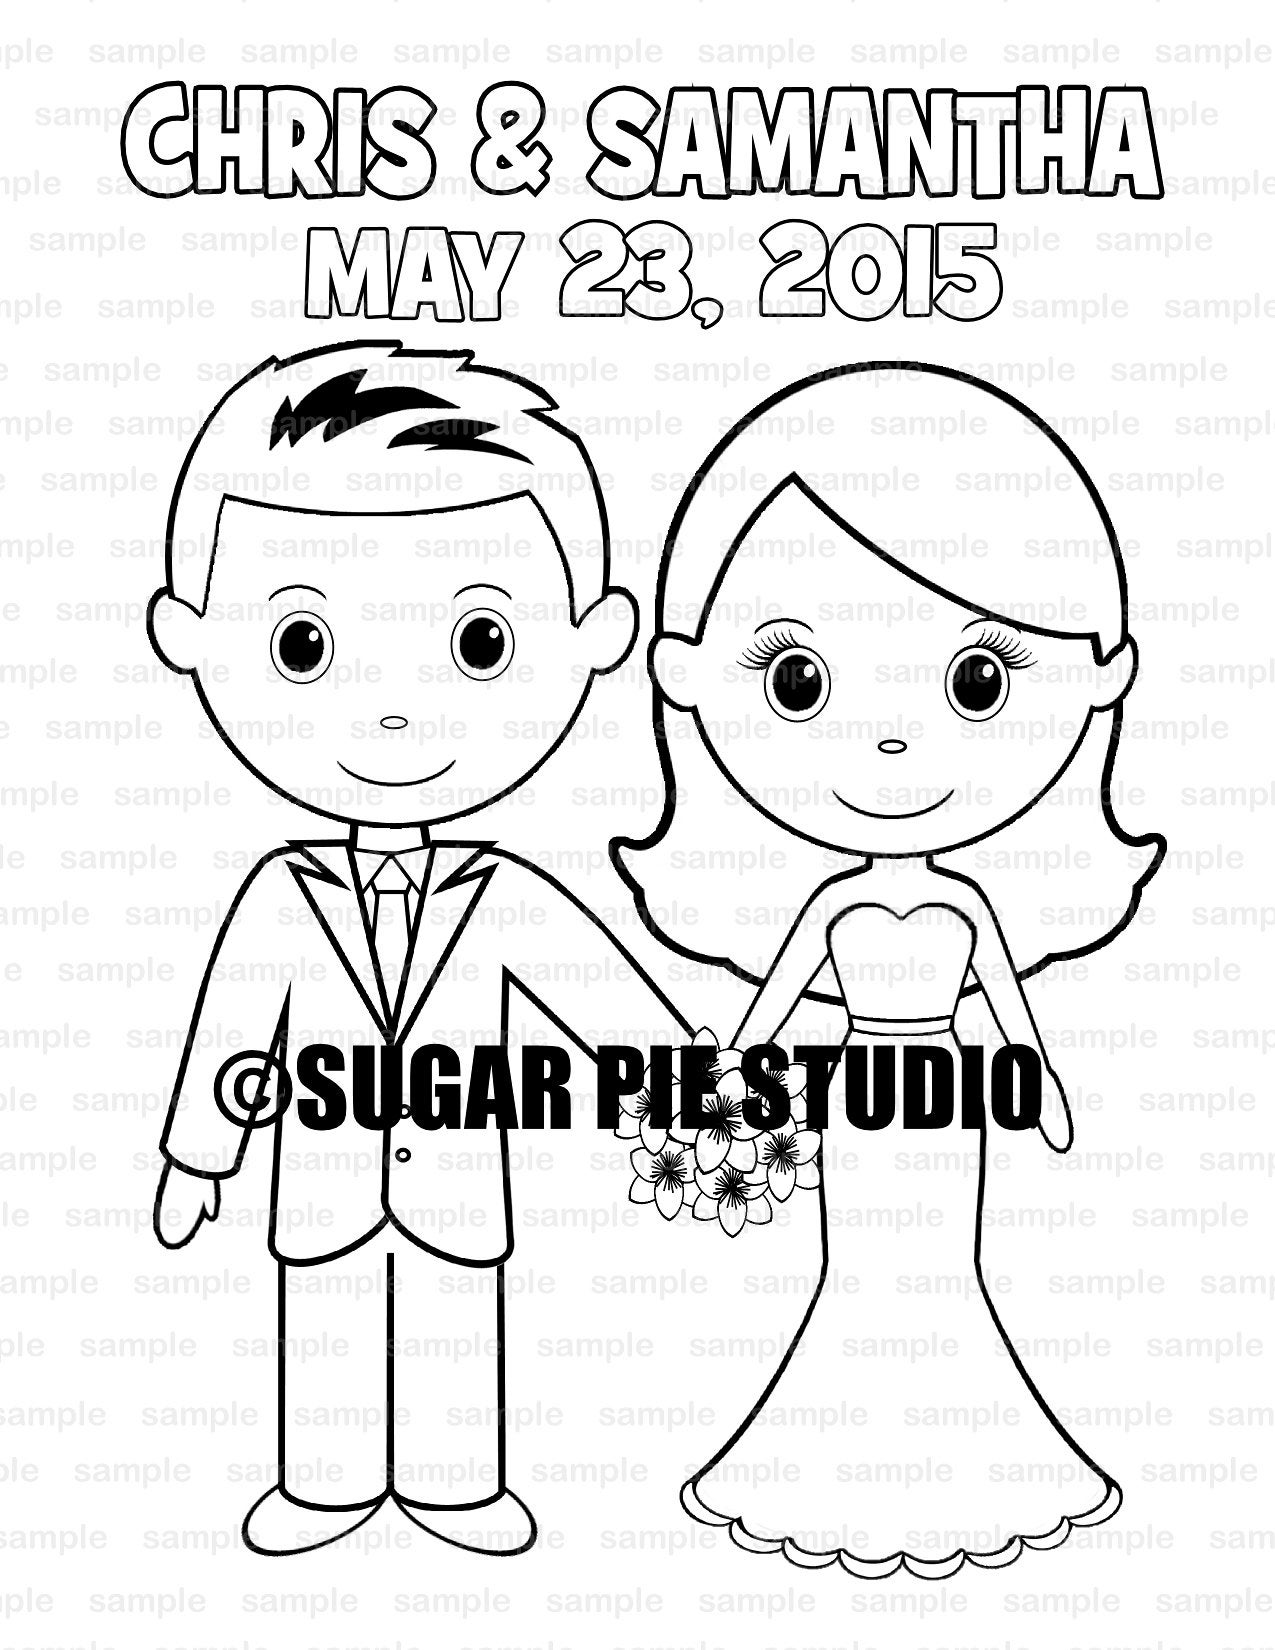 free personalized wedding coloring pages personalized wedding coloring pages collection free pages personalized coloring free wedding